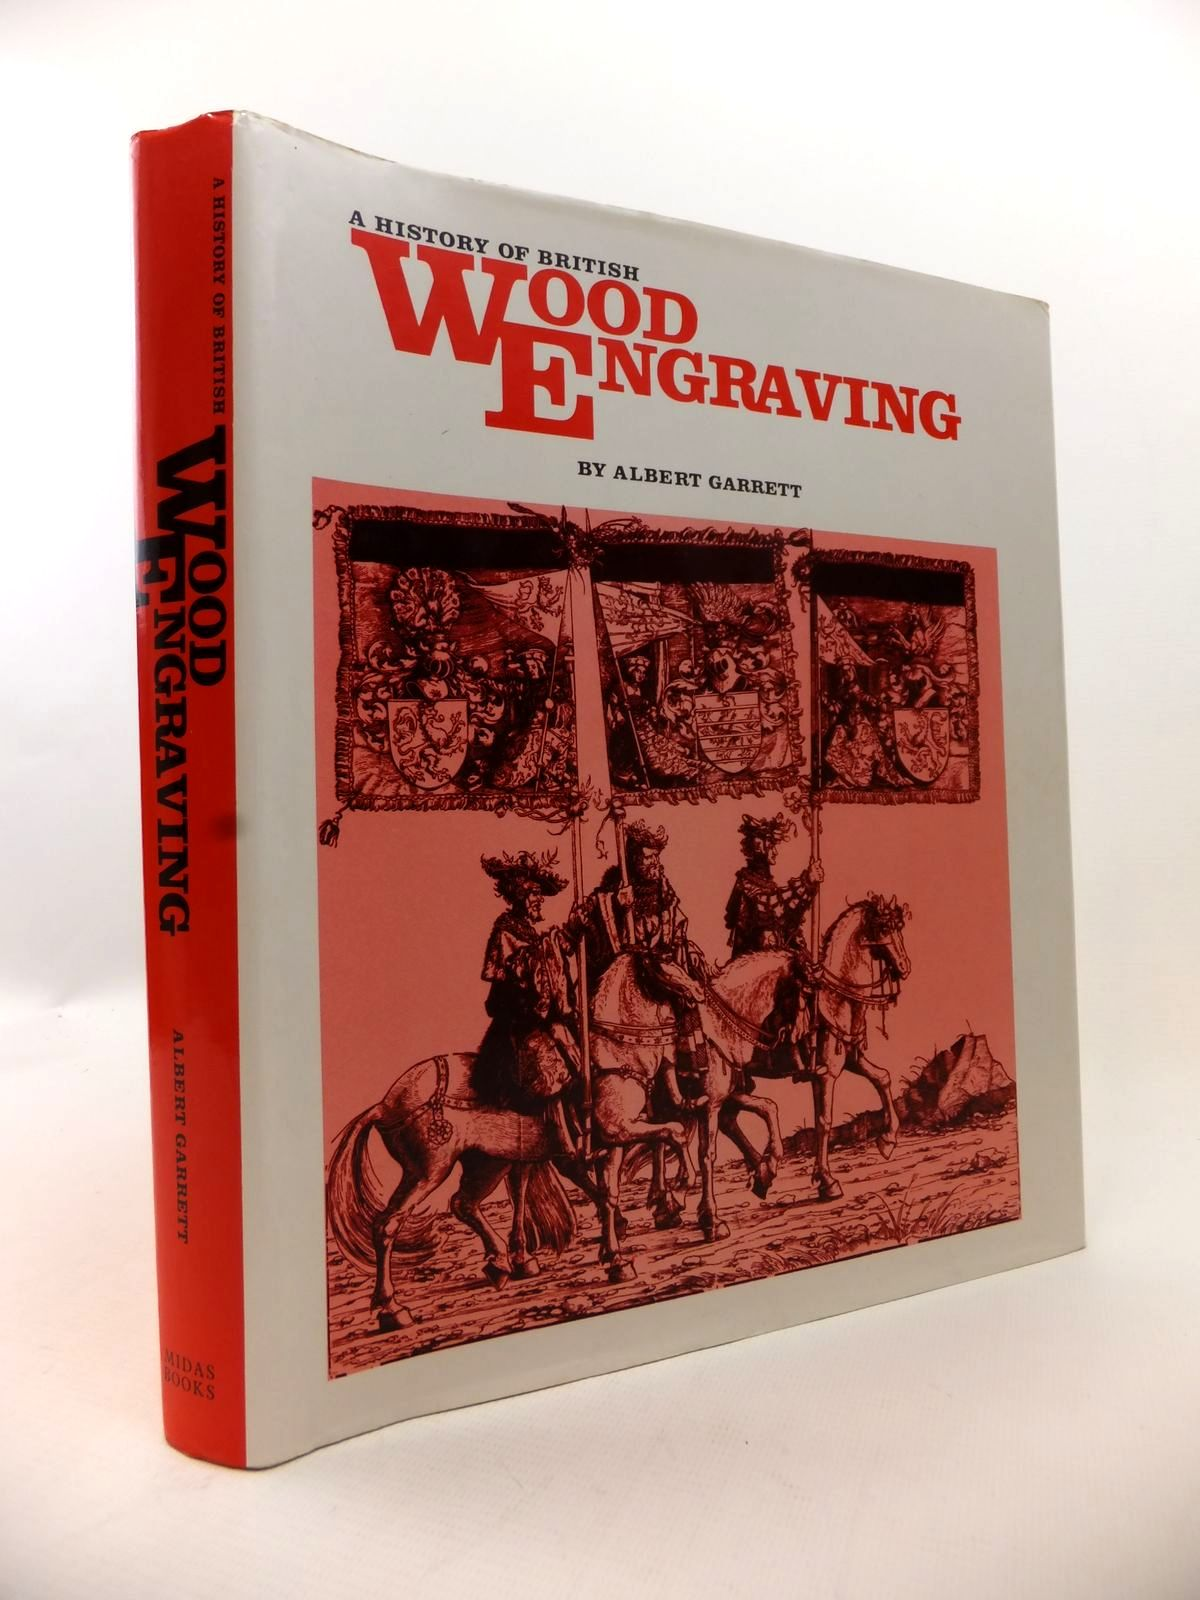 Photo of A HISTORY OF WOOD ENGRAVING written by Garrett, Albert published by Midas Books (STOCK CODE: 1813262)  for sale by Stella & Rose's Books